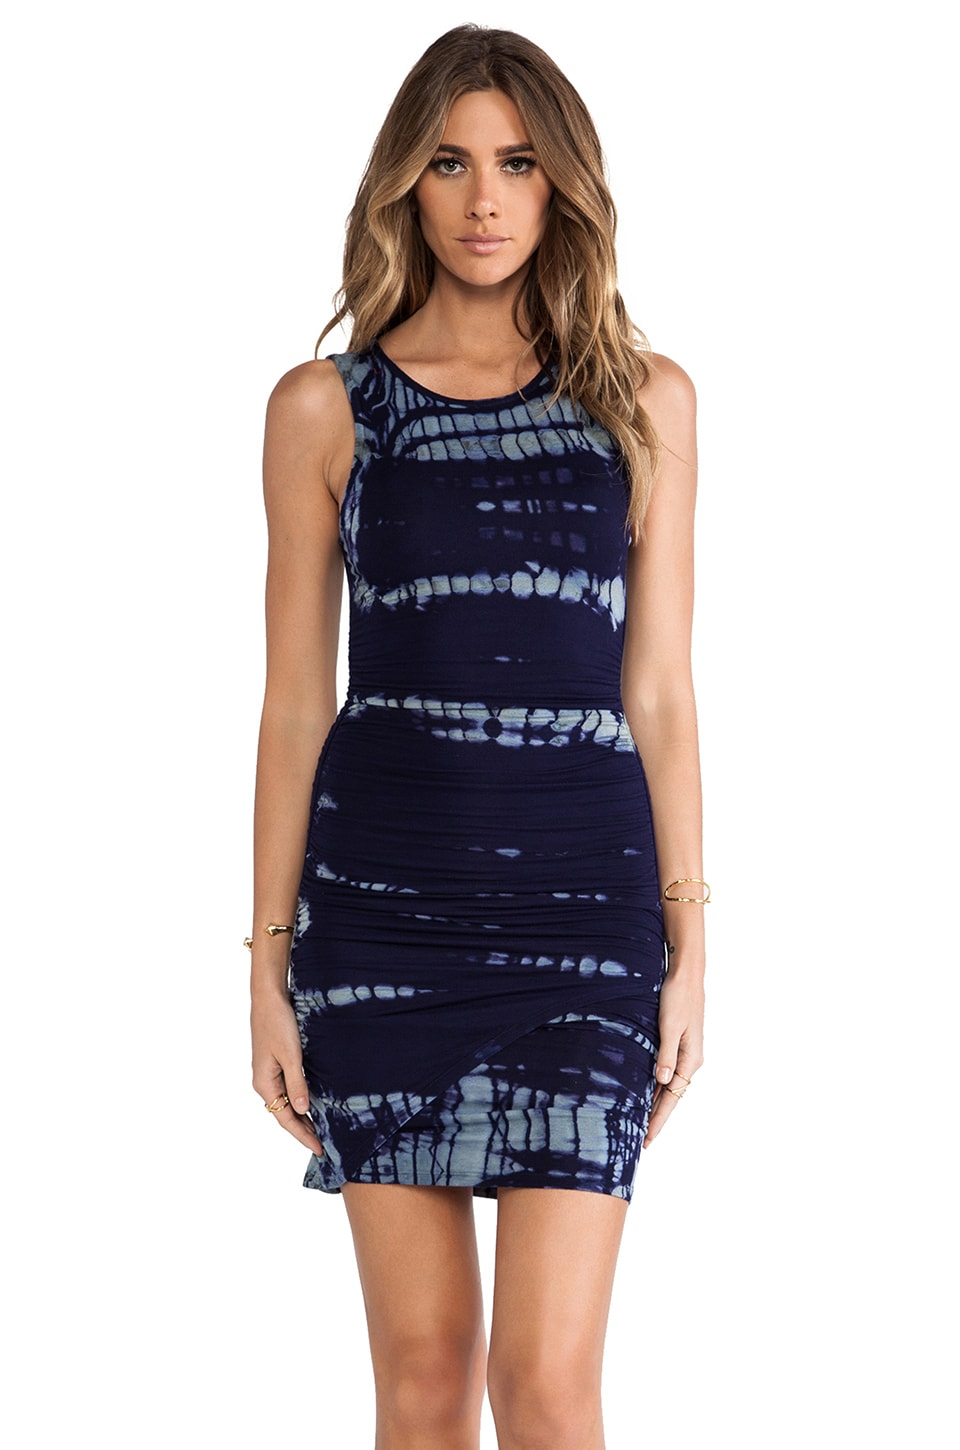 Gypsy 05 Sleeveless Mini Dress in Navy Multi